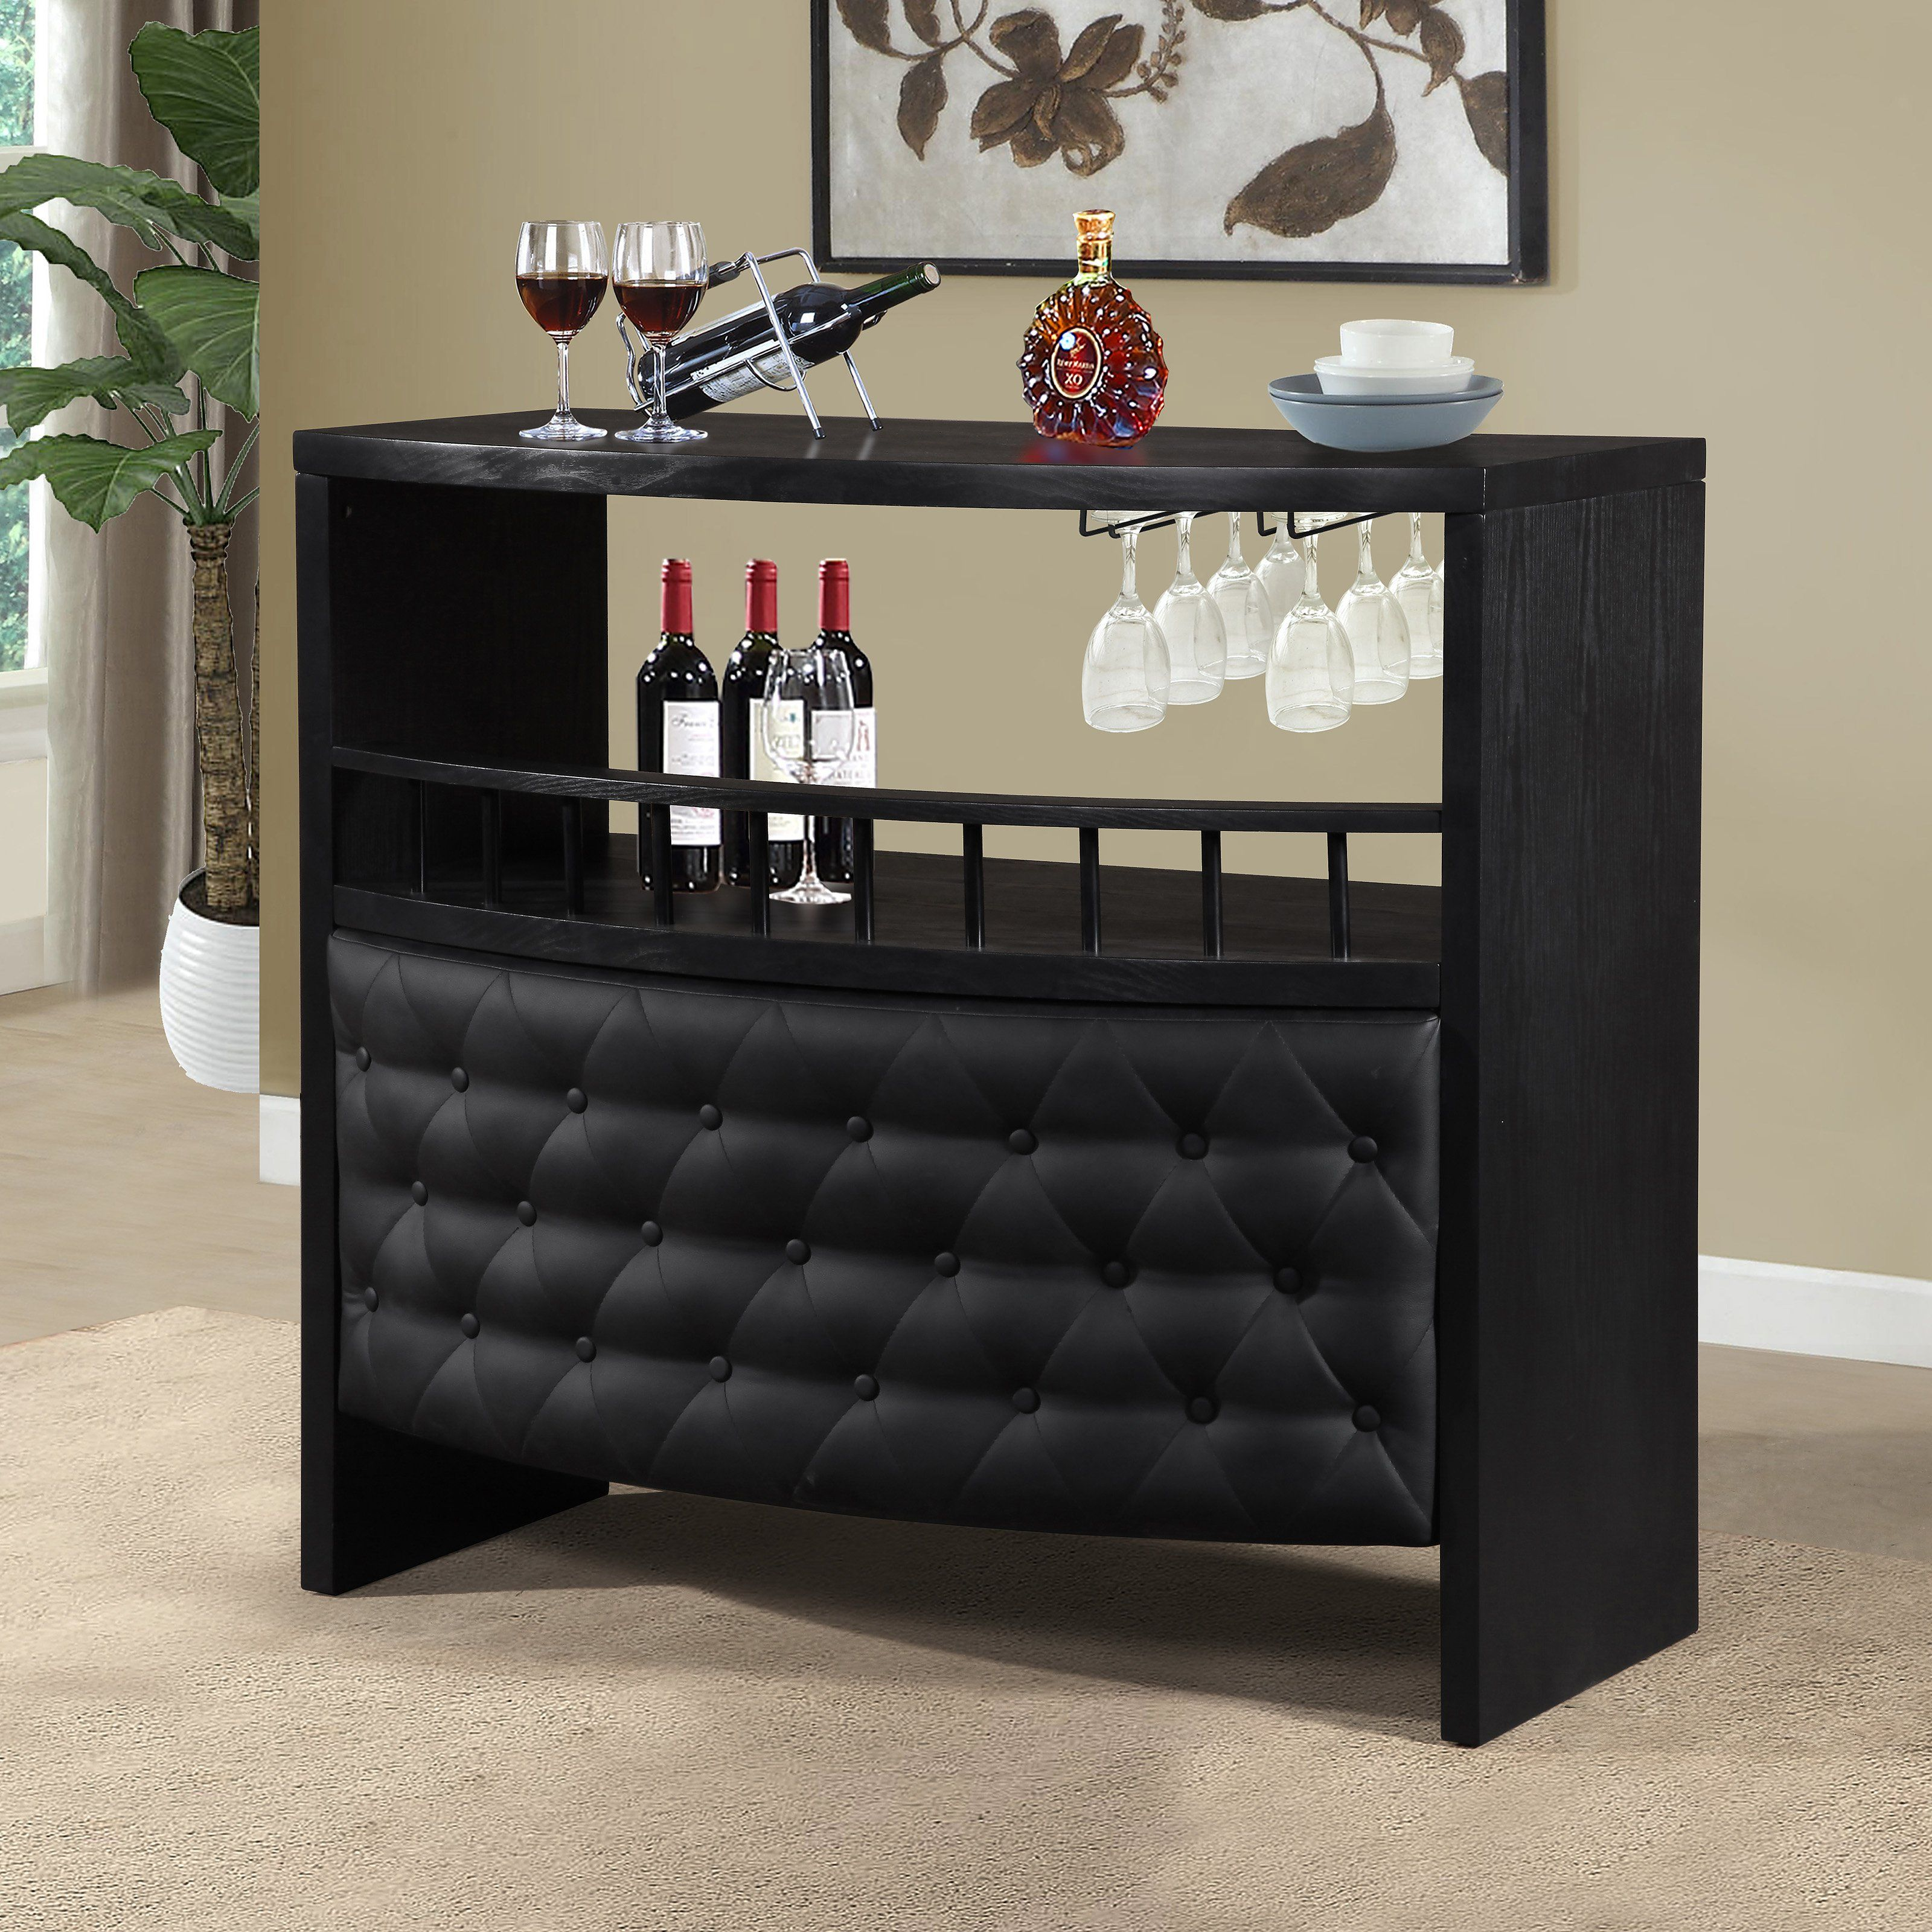 Home Source Industries Home Bar With Storage - From Hayneedlecom